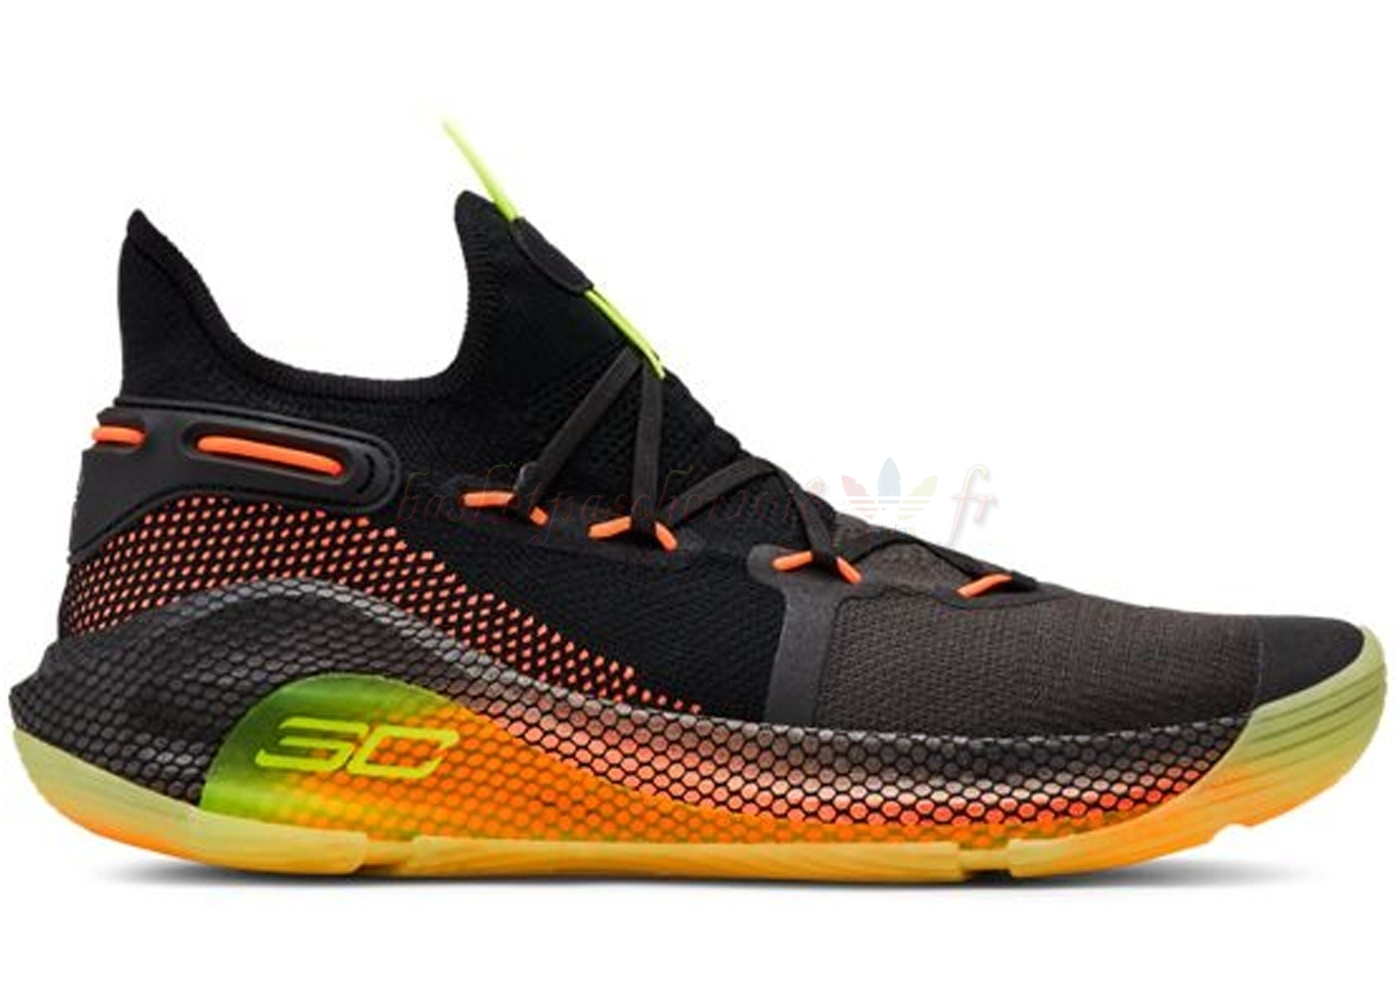 "Vente Chaude Chaussures De Basketball Homme Under Armour Curry 6 ""Fox Theatre"" Noir Jaune (3020612-004) Pas Cher"